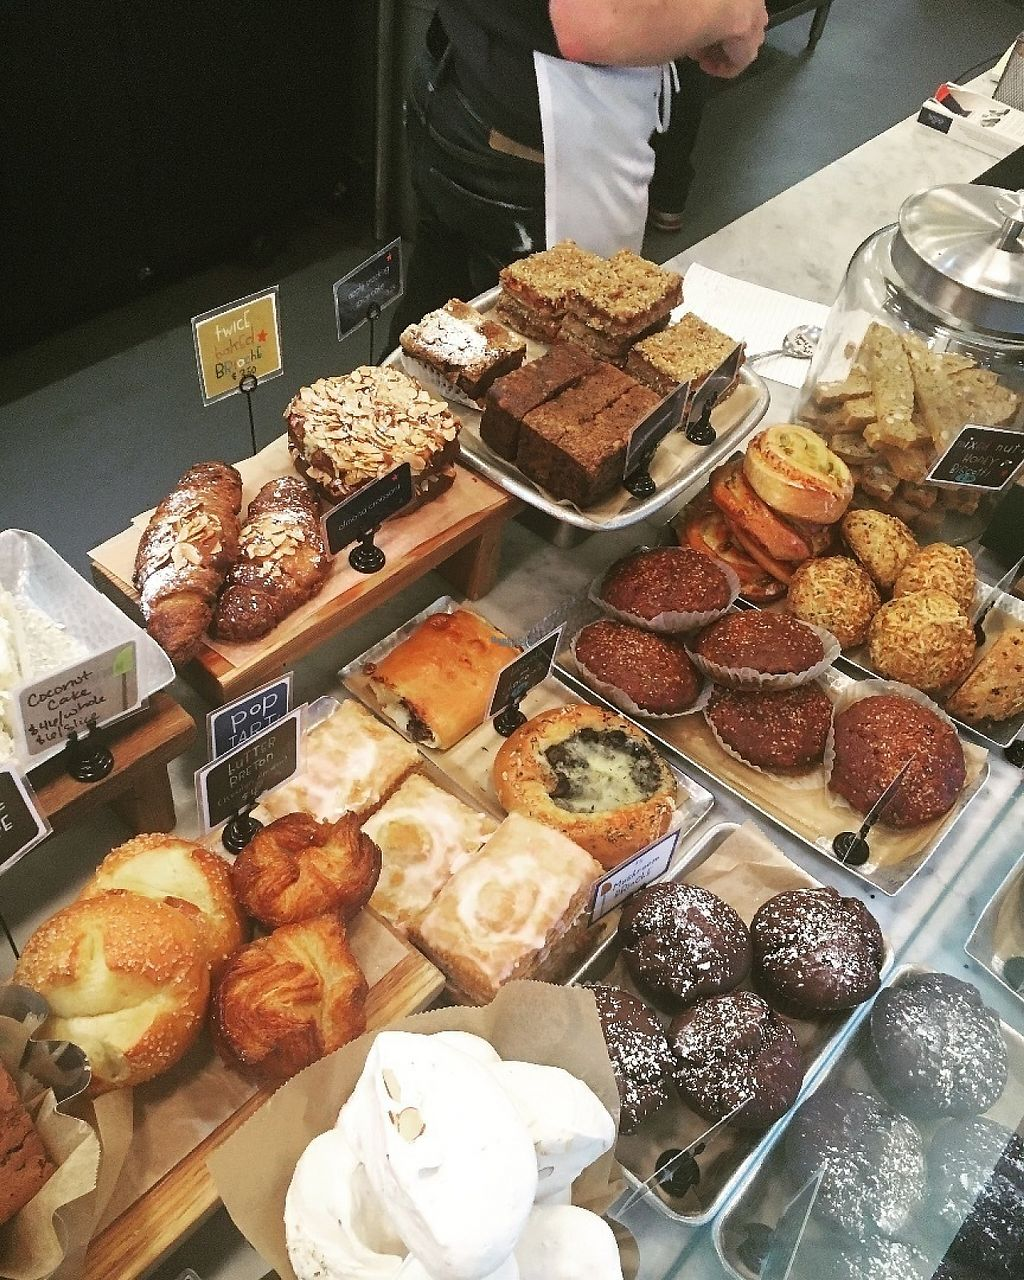 """Photo of Flour Bakery and Cafe - Back Bay  by <a href=""""/members/profile/MaddyLowney"""">MaddyLowney</a> <br/>The bakery case -- ft the vegan low-fat chocolate cake and the monthly vegan muffin (carrot cake flavored) <br/> April 28, 2017  - <a href='/contact/abuse/image/91234/253510'>Report</a>"""